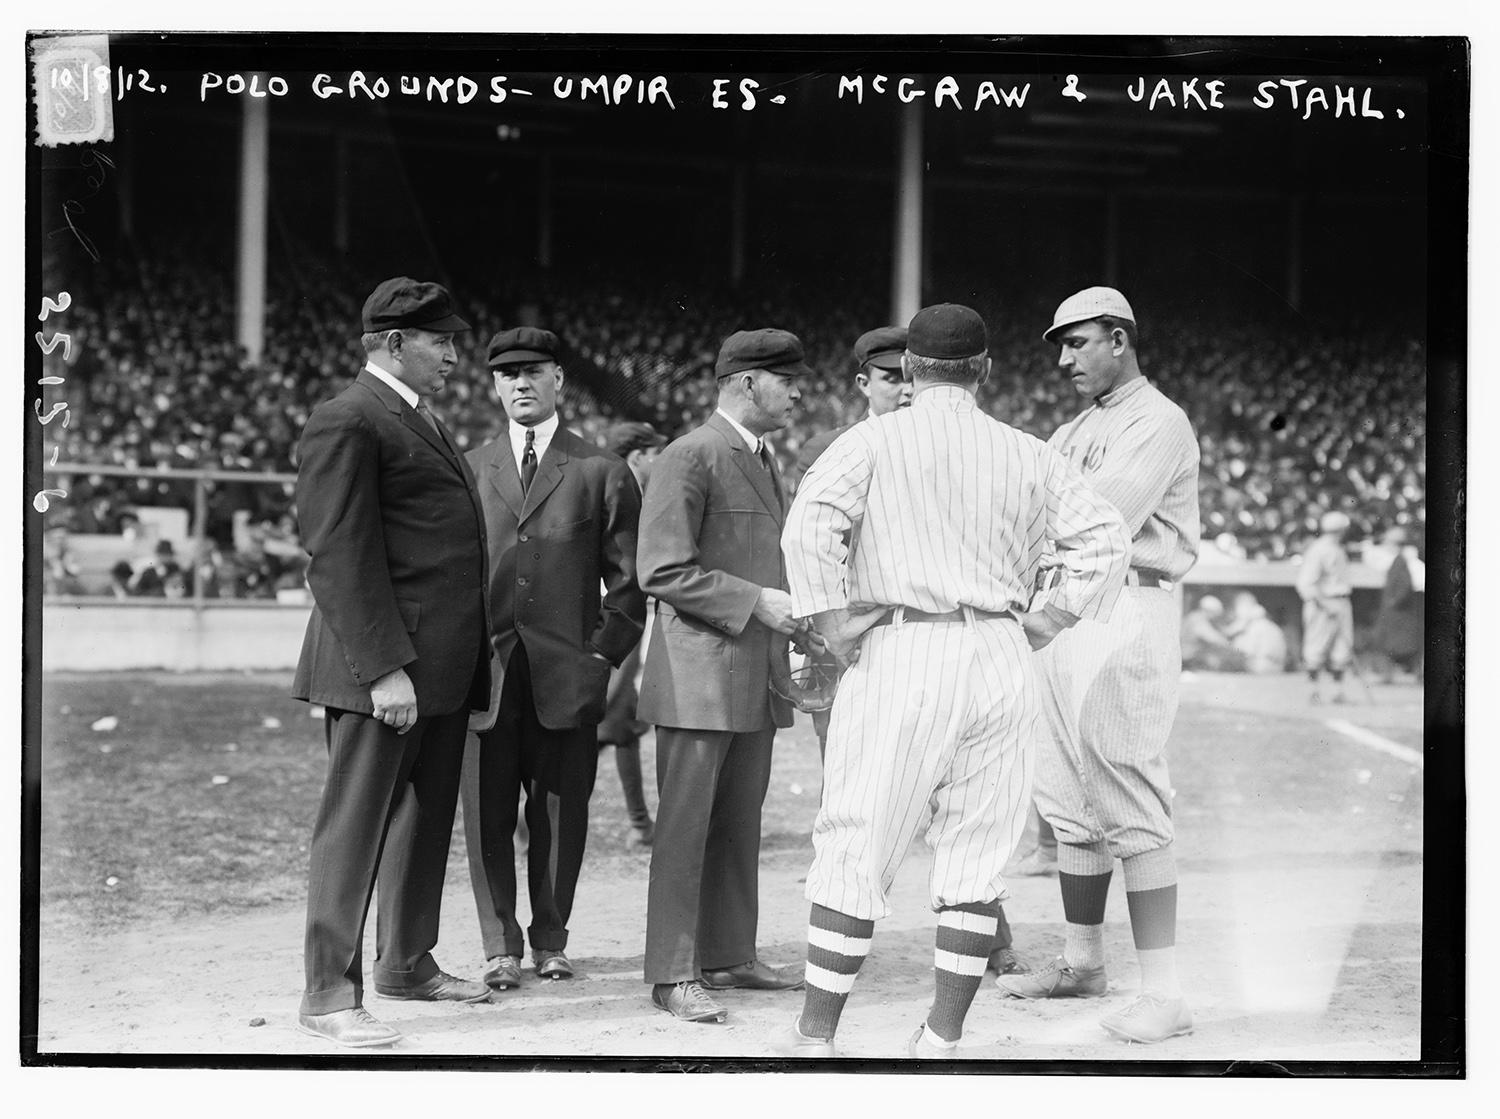 Pictured above from left to right: Umpires Cy Rigler, Silk O'Loughlin, Bill Klem, Billy Evans and managers John McGraw and Jake Stahl at the 1912 World Series. (Photo courtesy of Library of Congress)